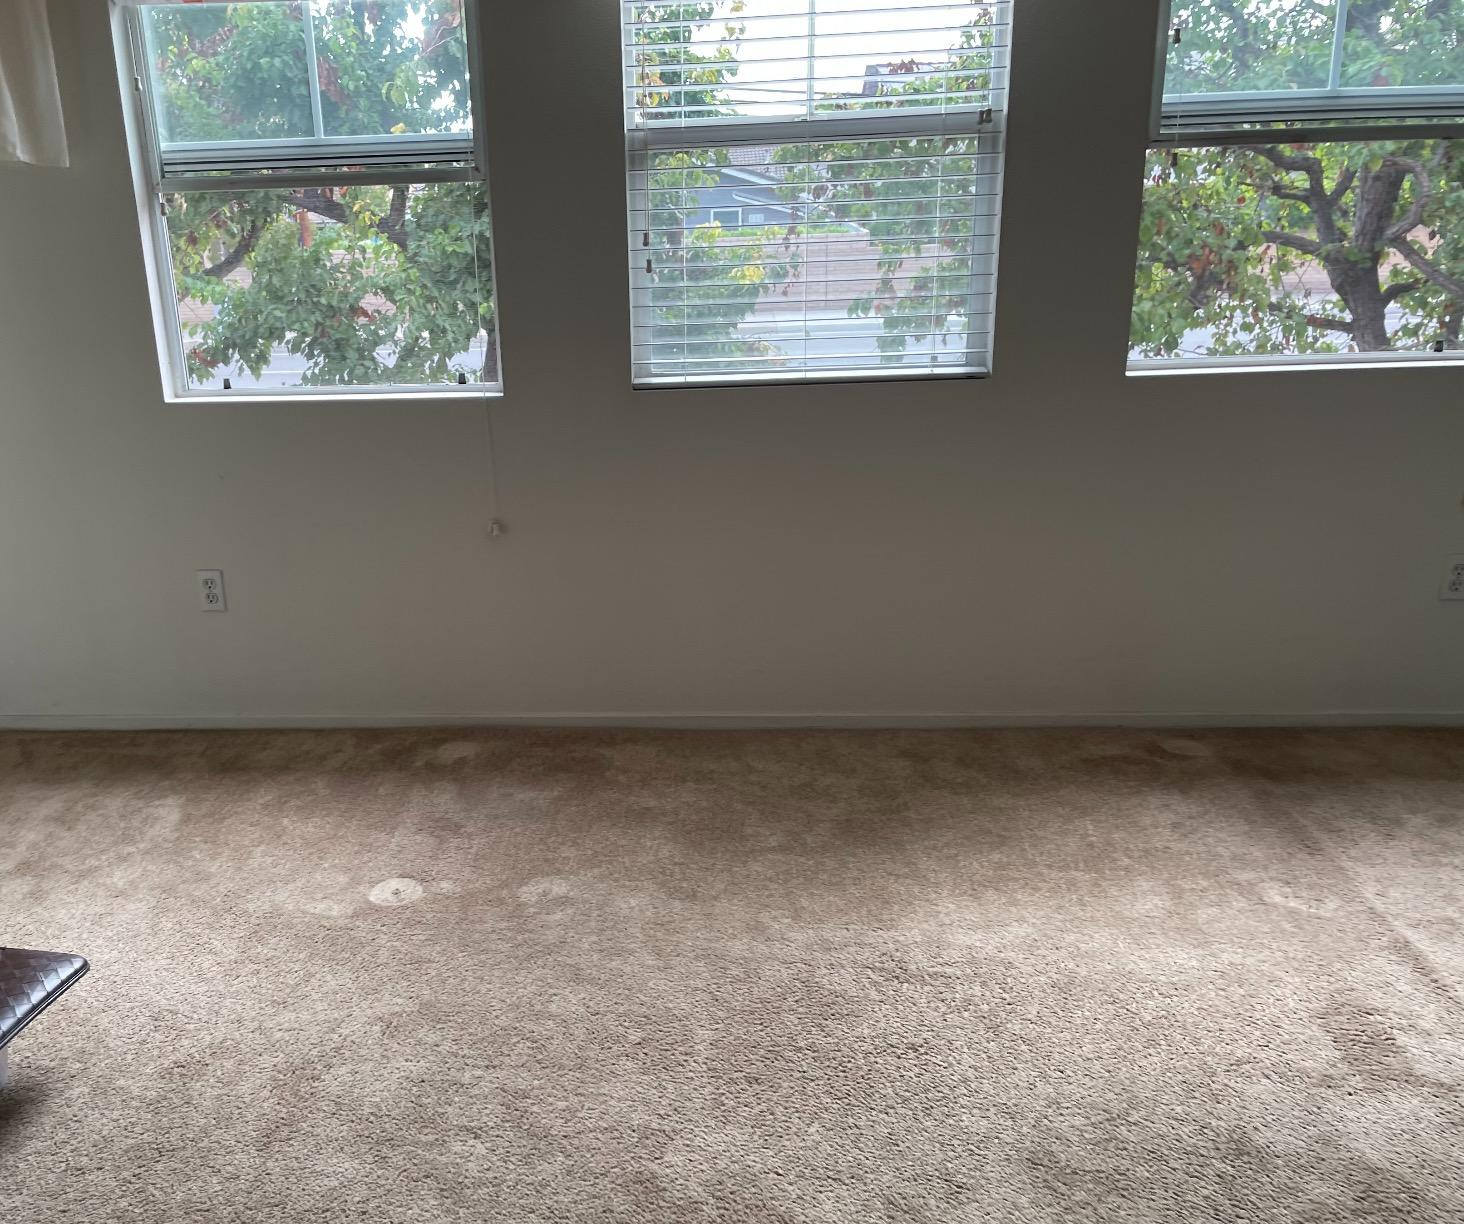 Furniture Removal Services in Cerritos, CA. - After Photo